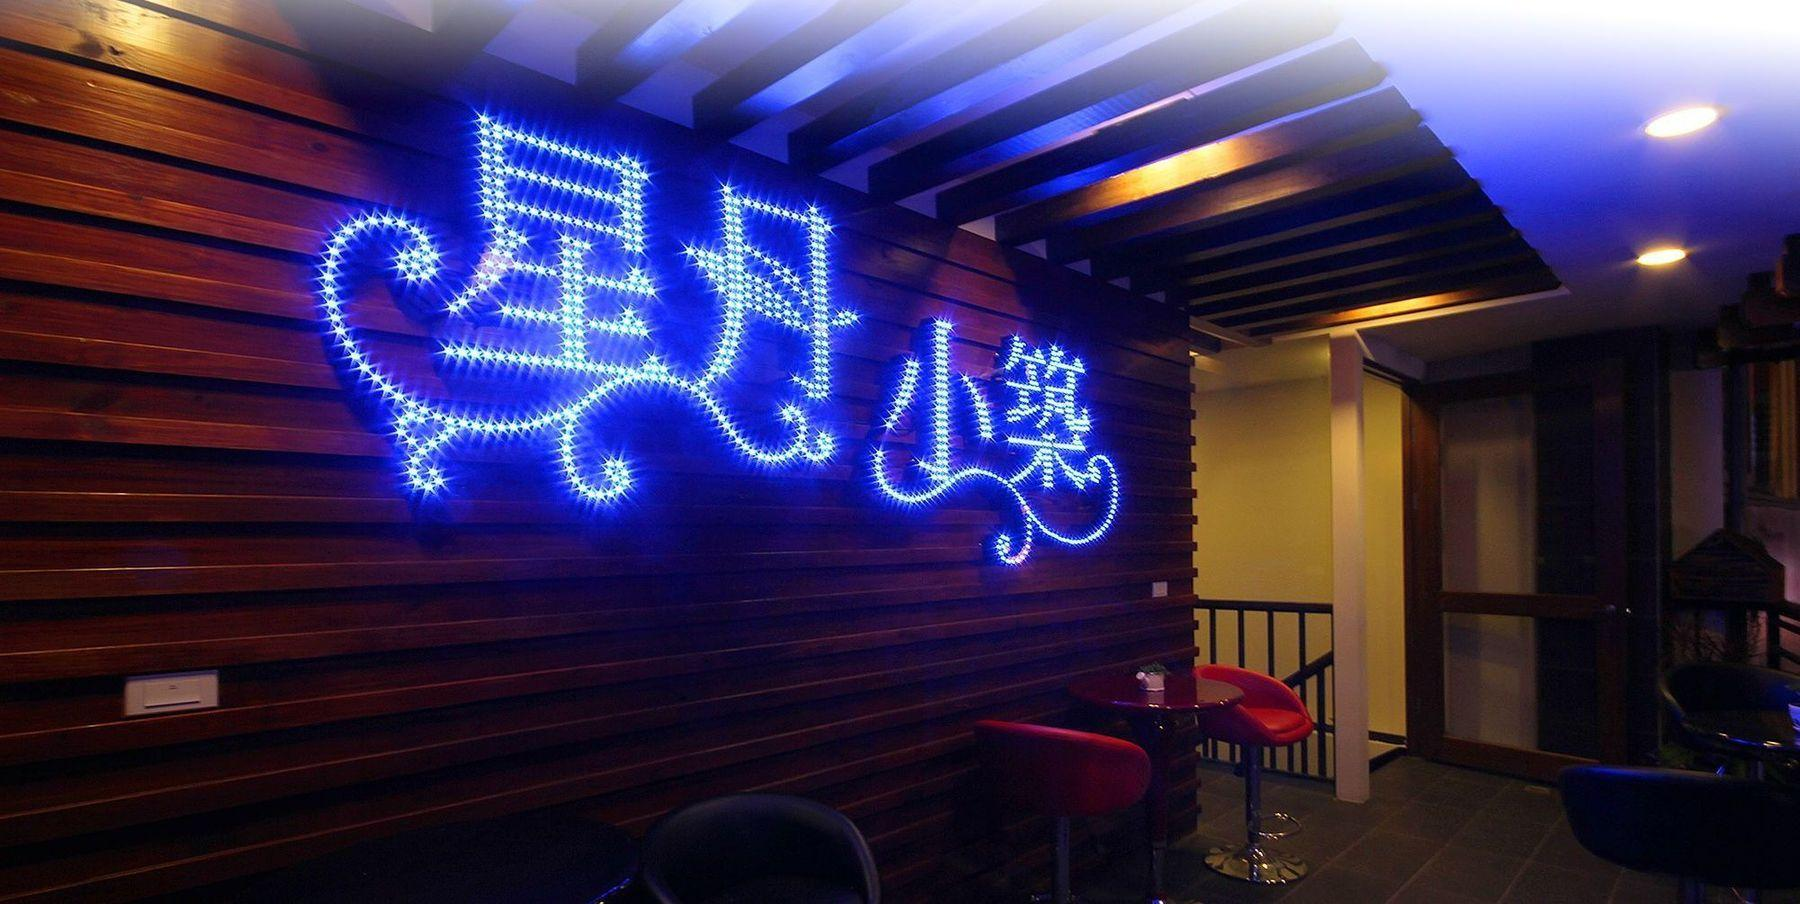 10 Best Nantou Hotels Hd Pictures Reviews Of Hotels In